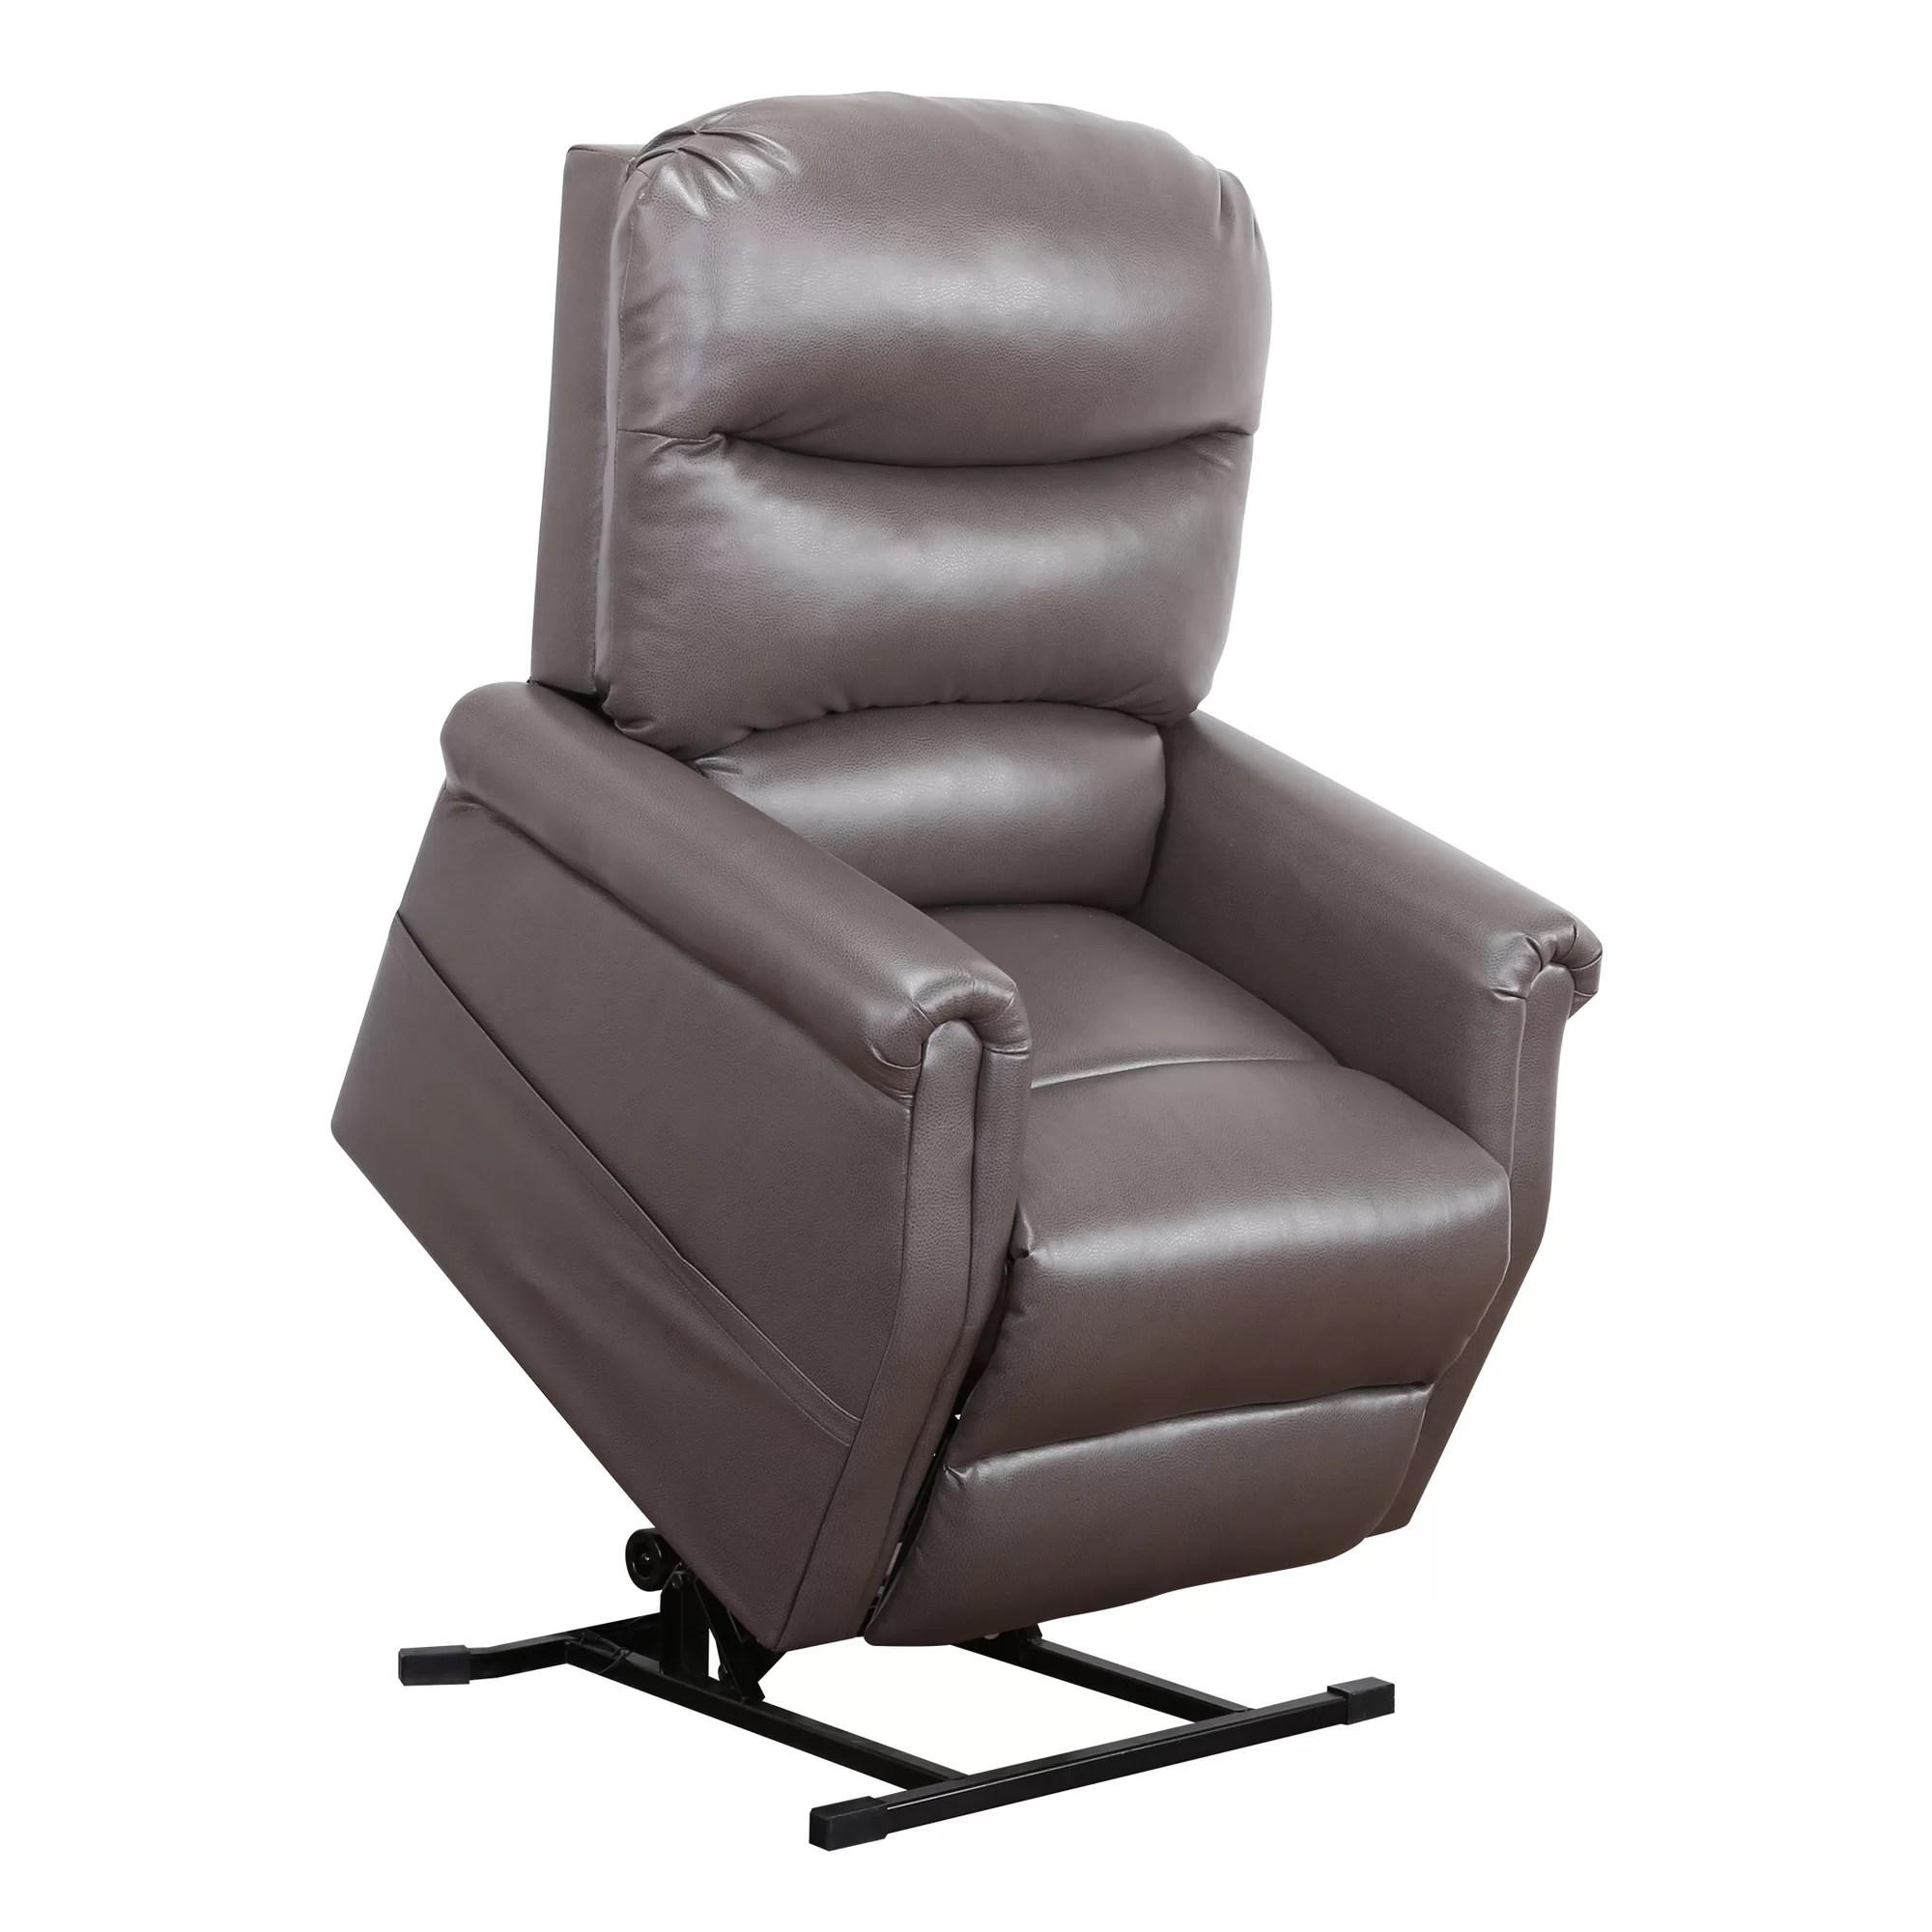 Infinite Position Lift Chair Madison Home Usa Classic Infinite Position Lift Chair